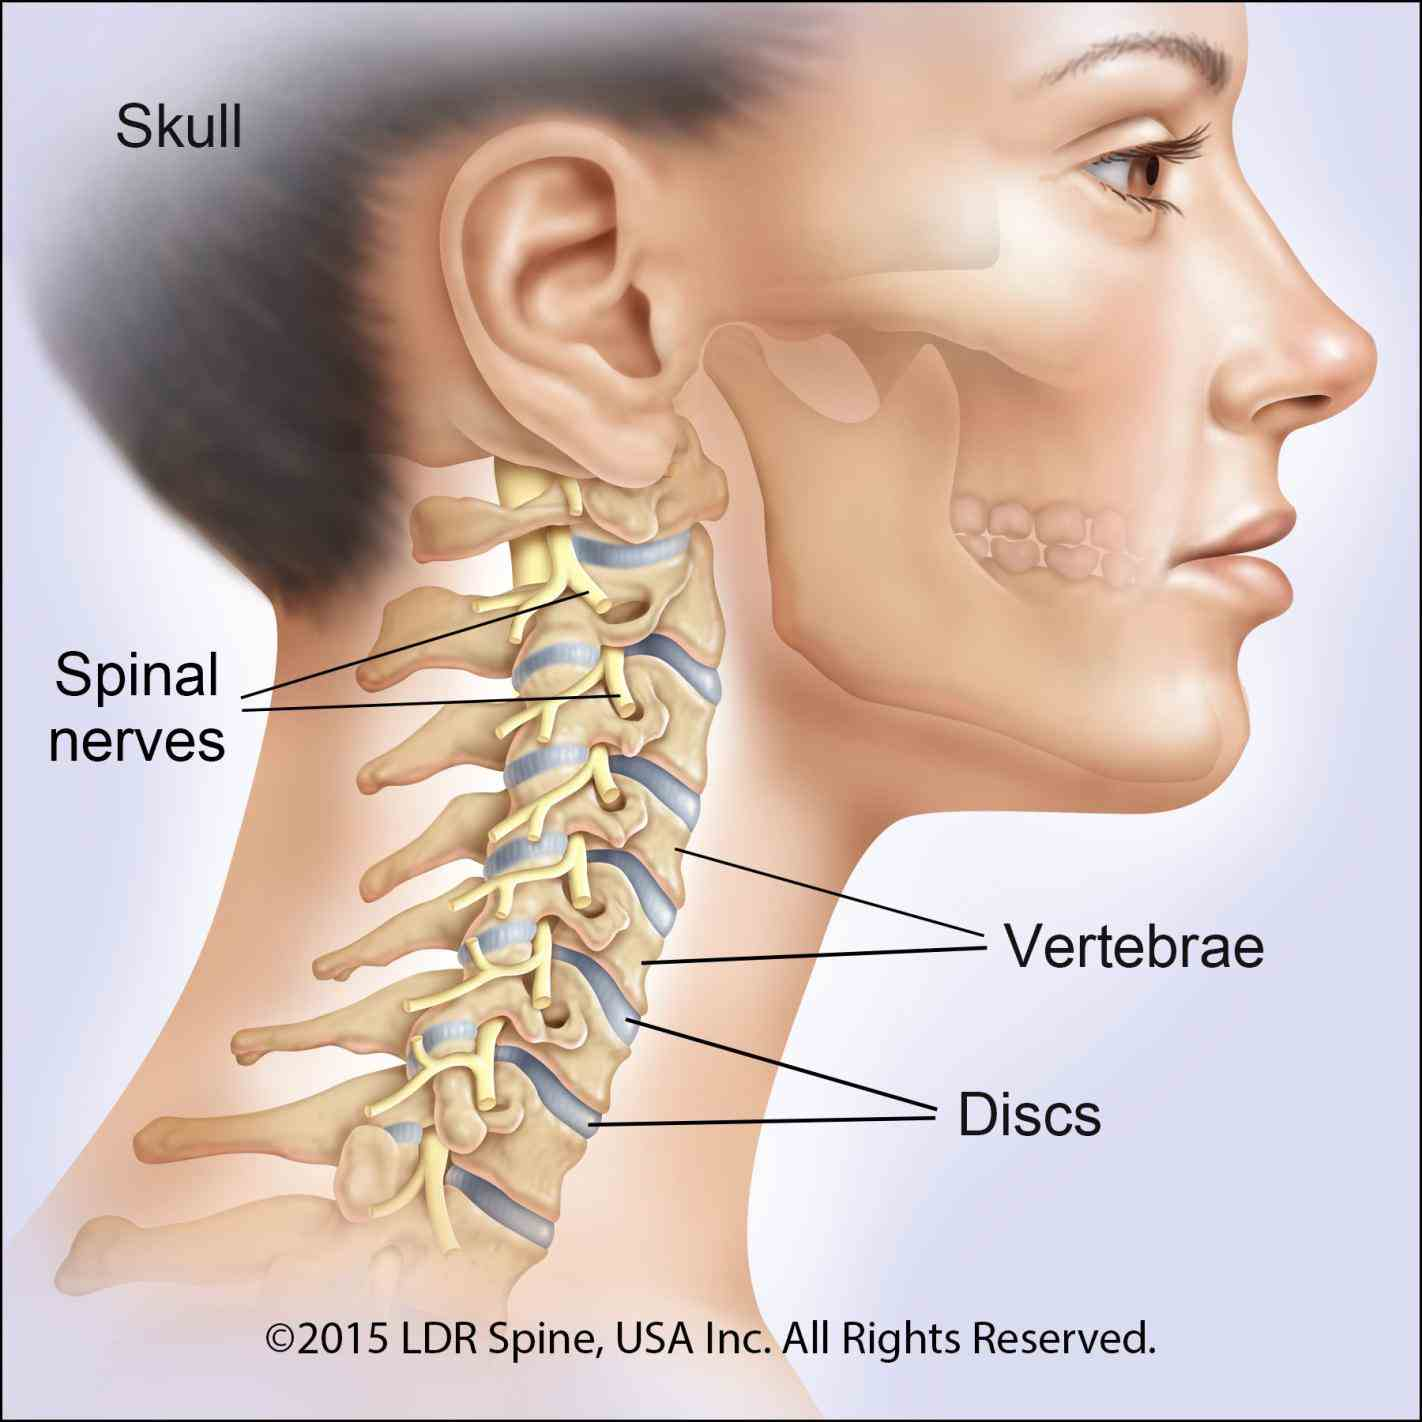 vertebrates cervical vertebrae singular vertebra are the of neck immediately spinal nerves emerge from above for example nerve c